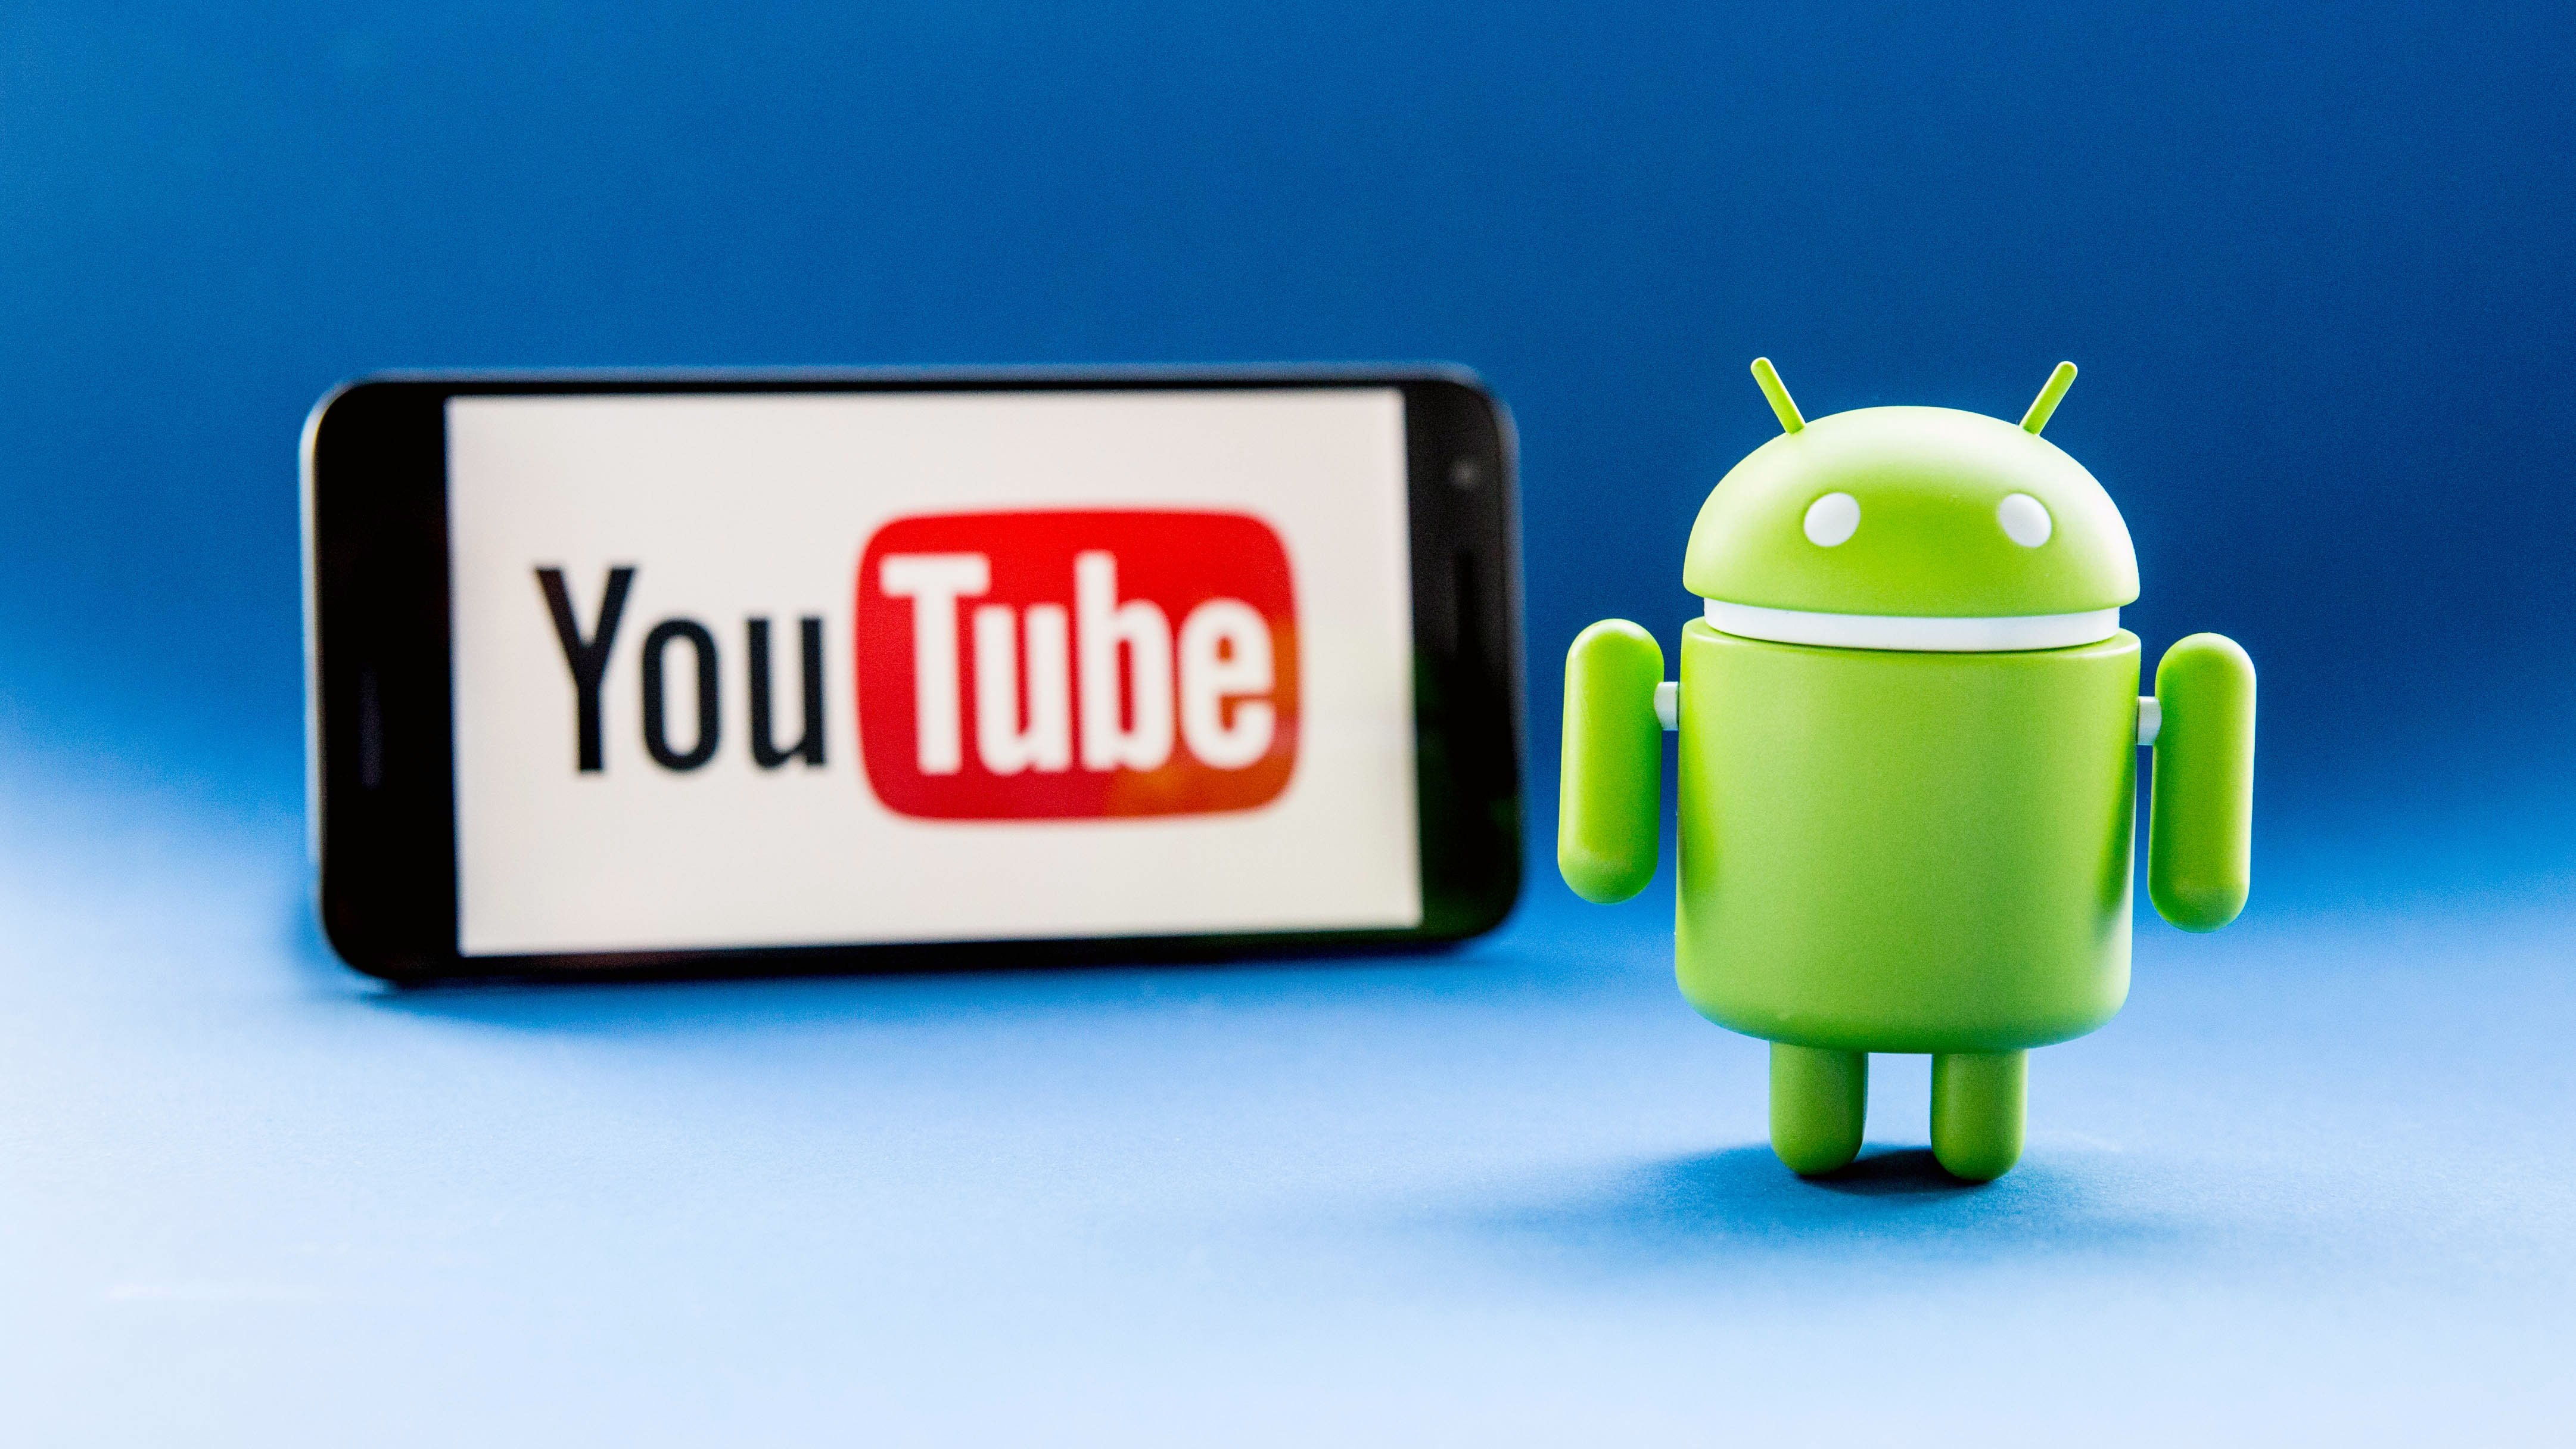 How to play YouTube videos in the background - AndroidPIT